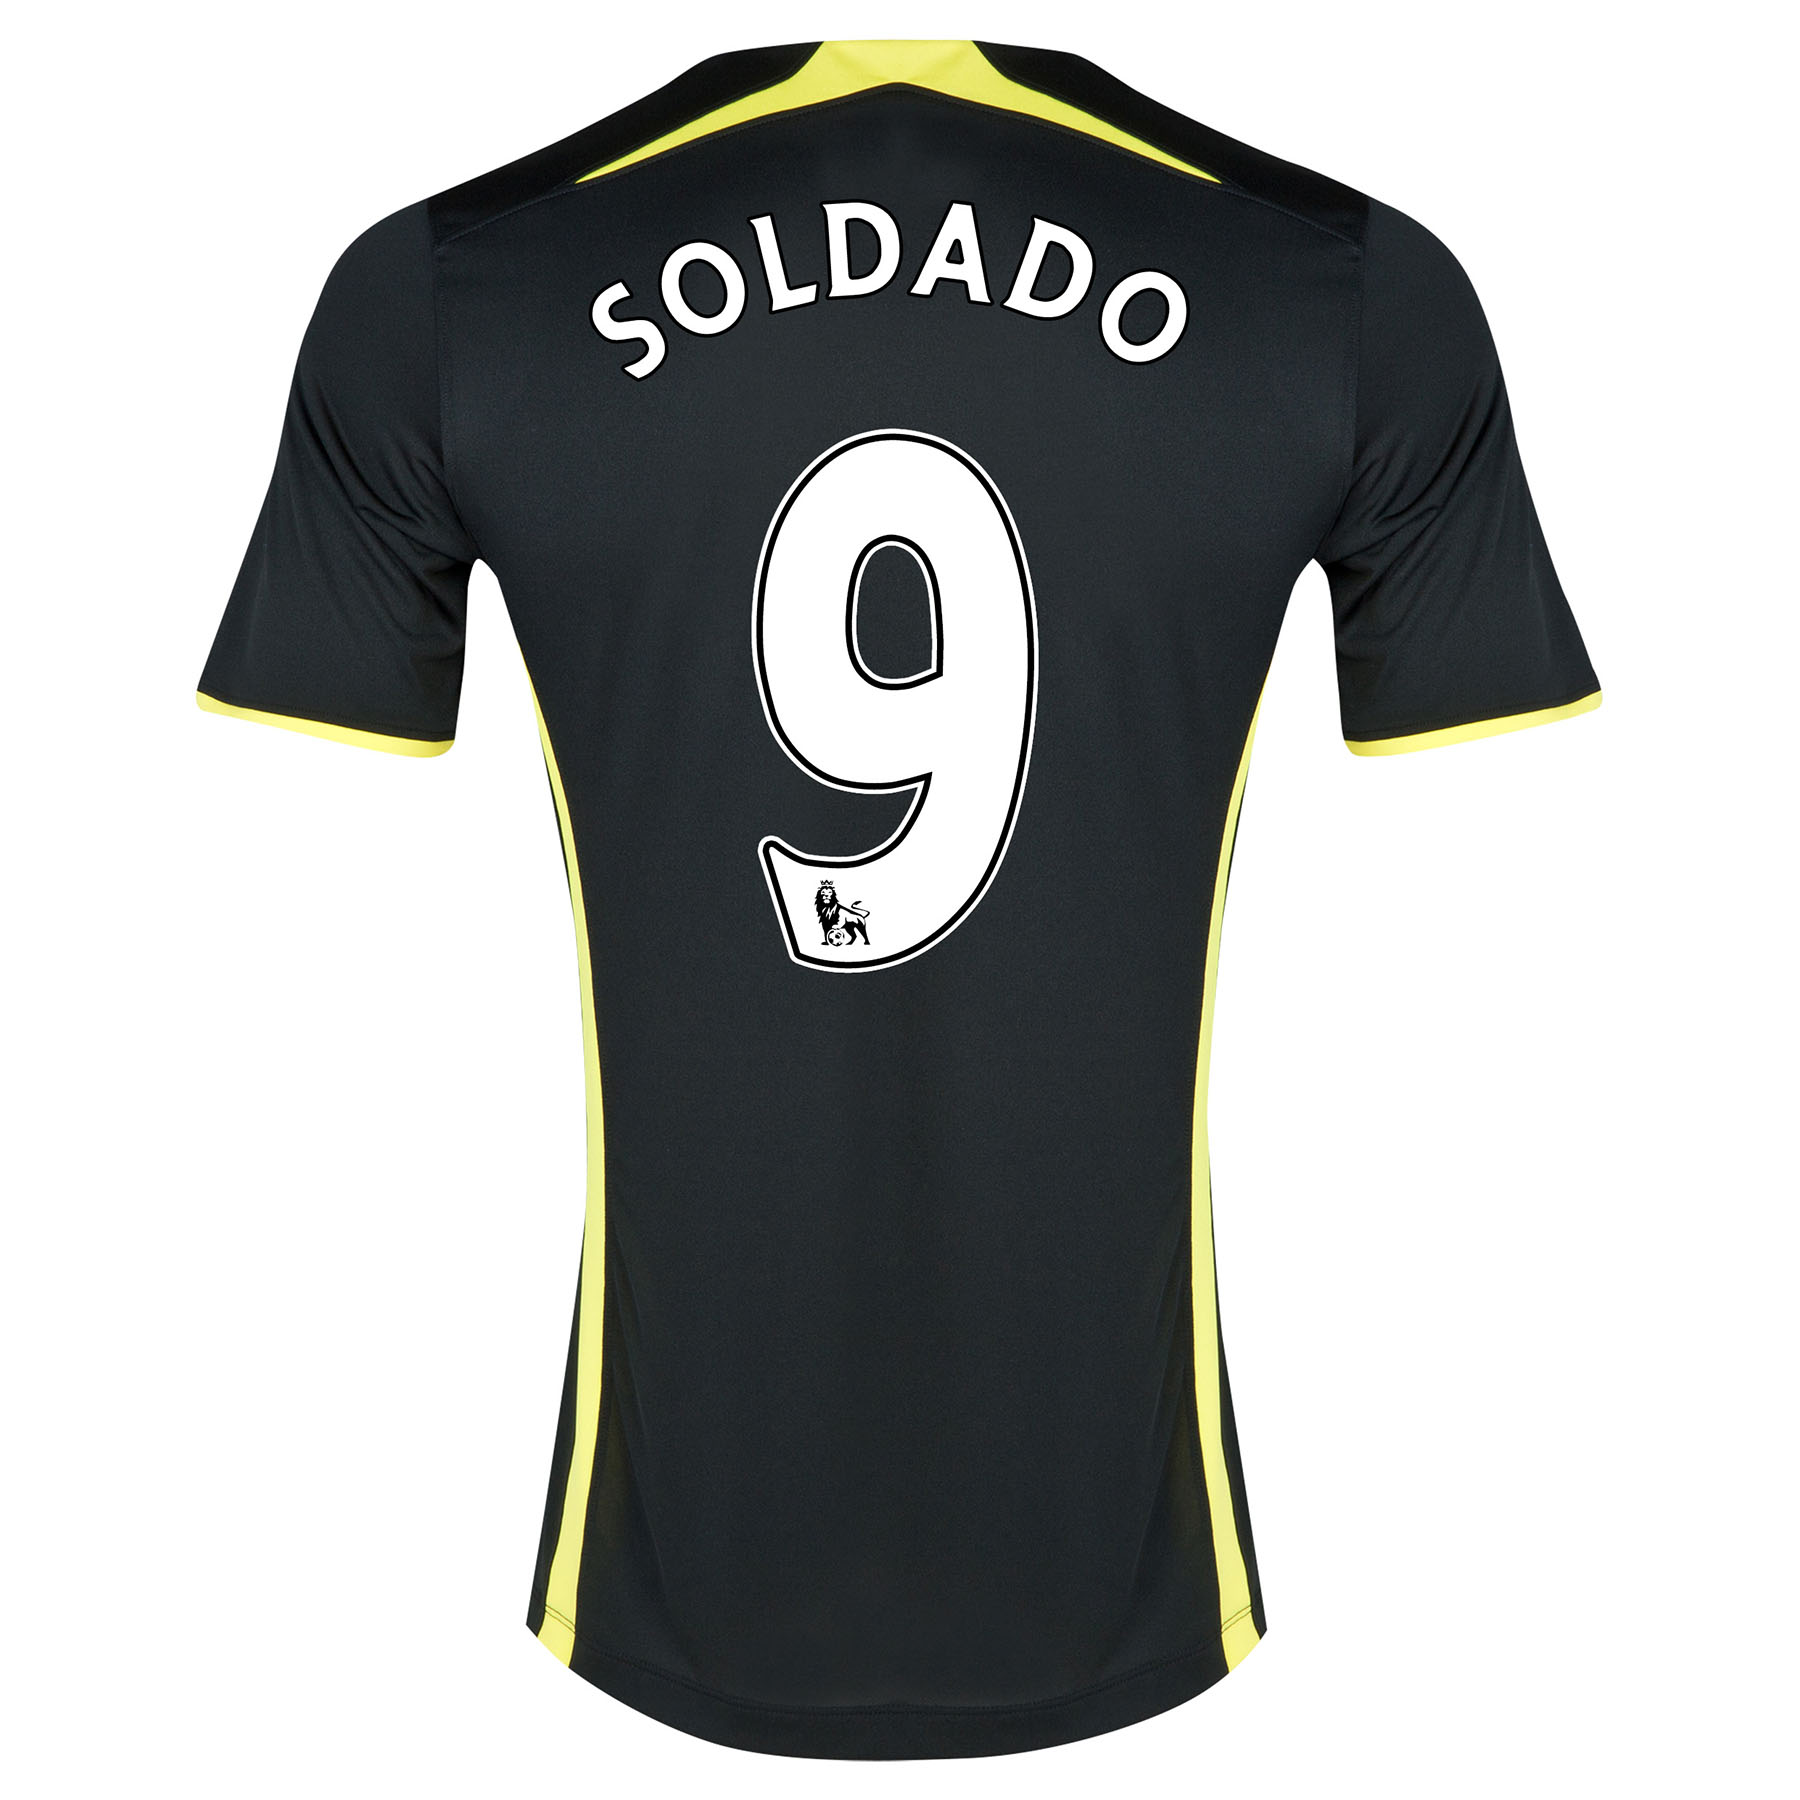 Tottenham Hotspur Away Shirt 2014/15 - Womens with Soldado 9 printing